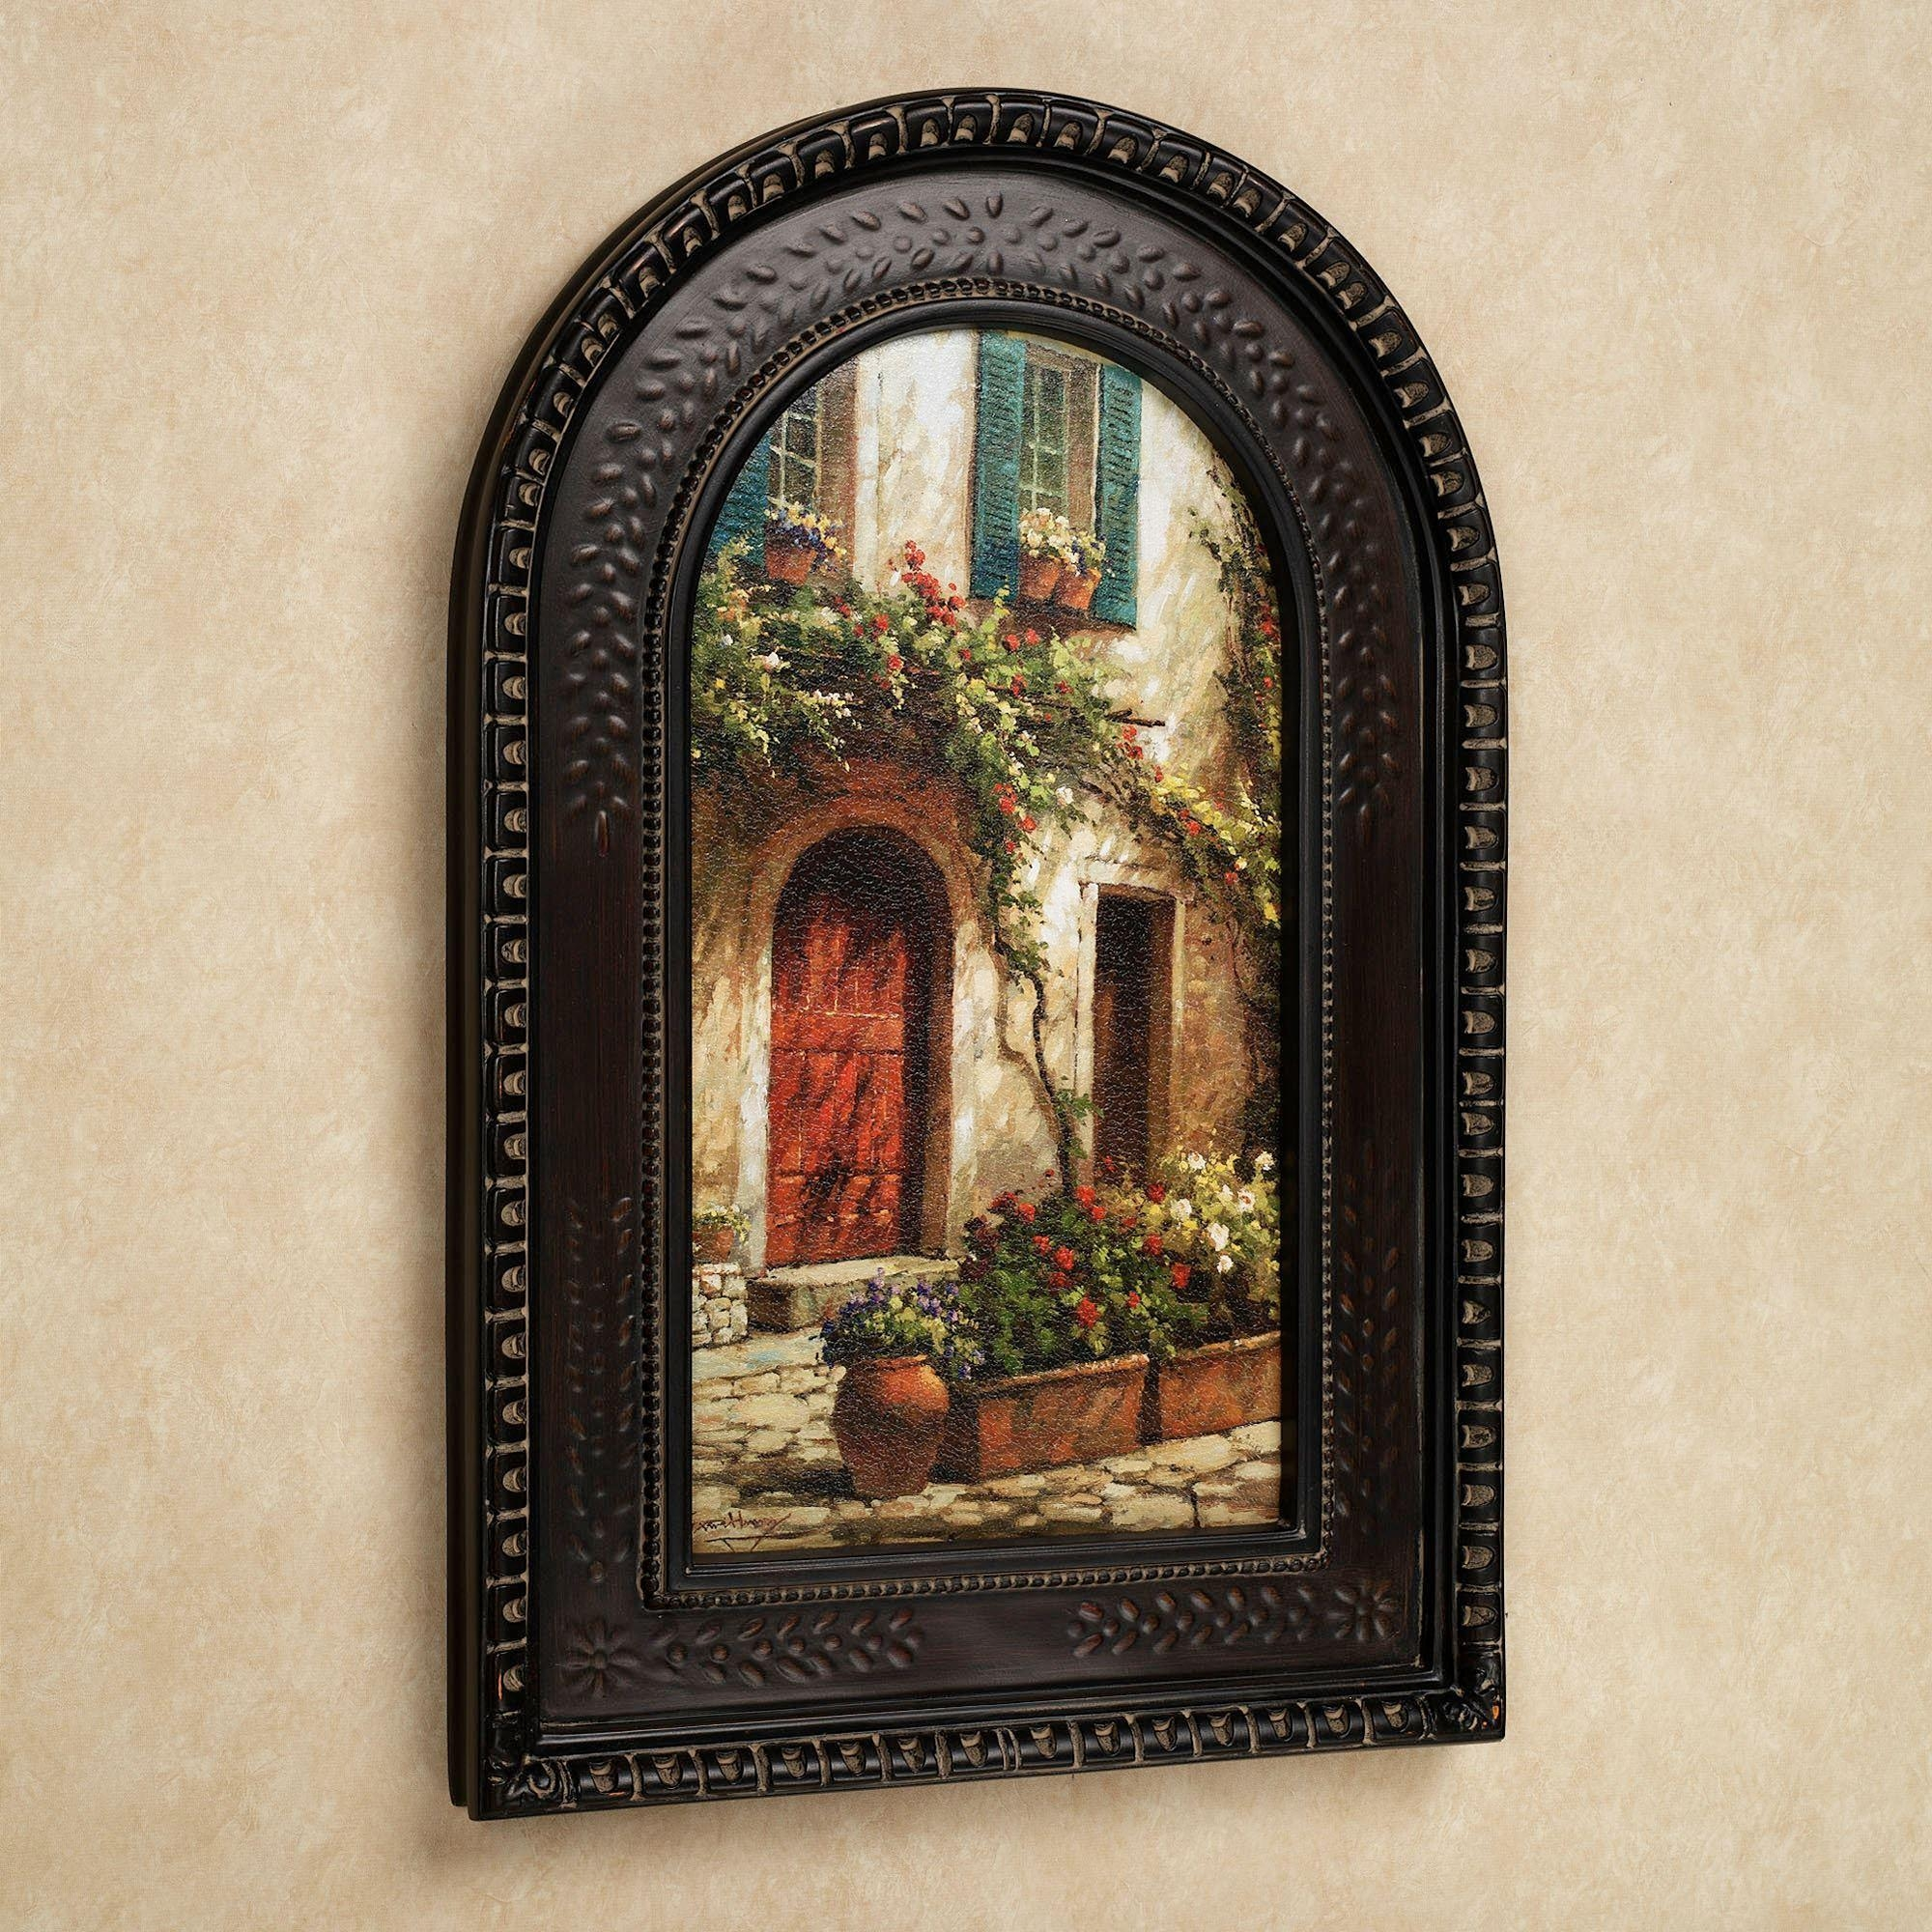 Red Door Italian Scene Arched Framed Wall Art Inside Italian Wall Art (View 5 of 20)